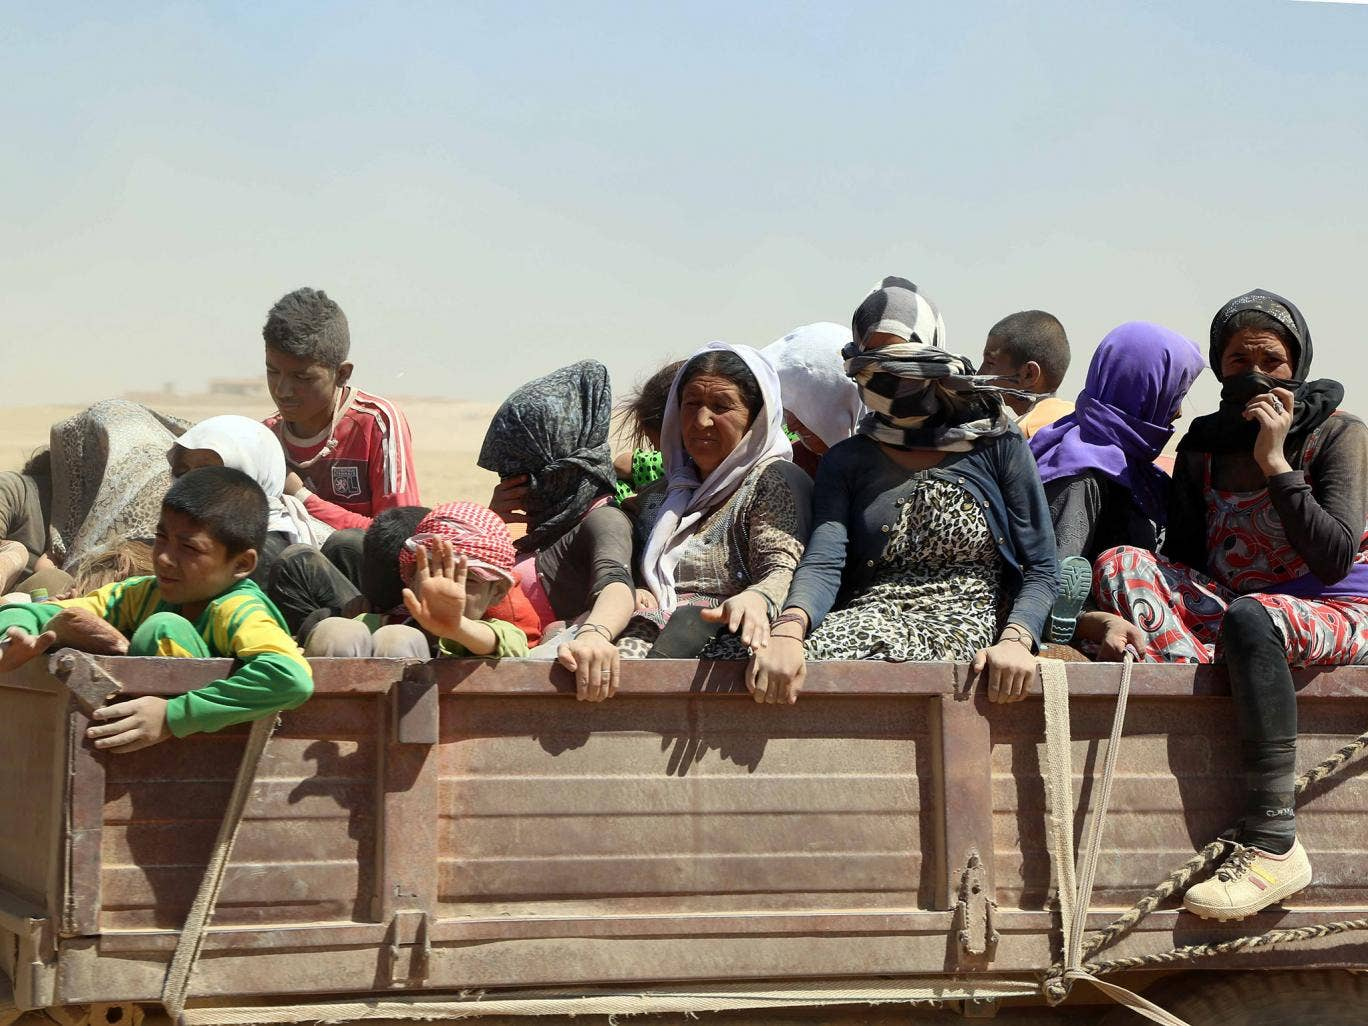 Yazidis who had fled to the Sinjar mountains to escape Isis fighters are brought to safety in Mosul by Kurdish Peshmerga forces